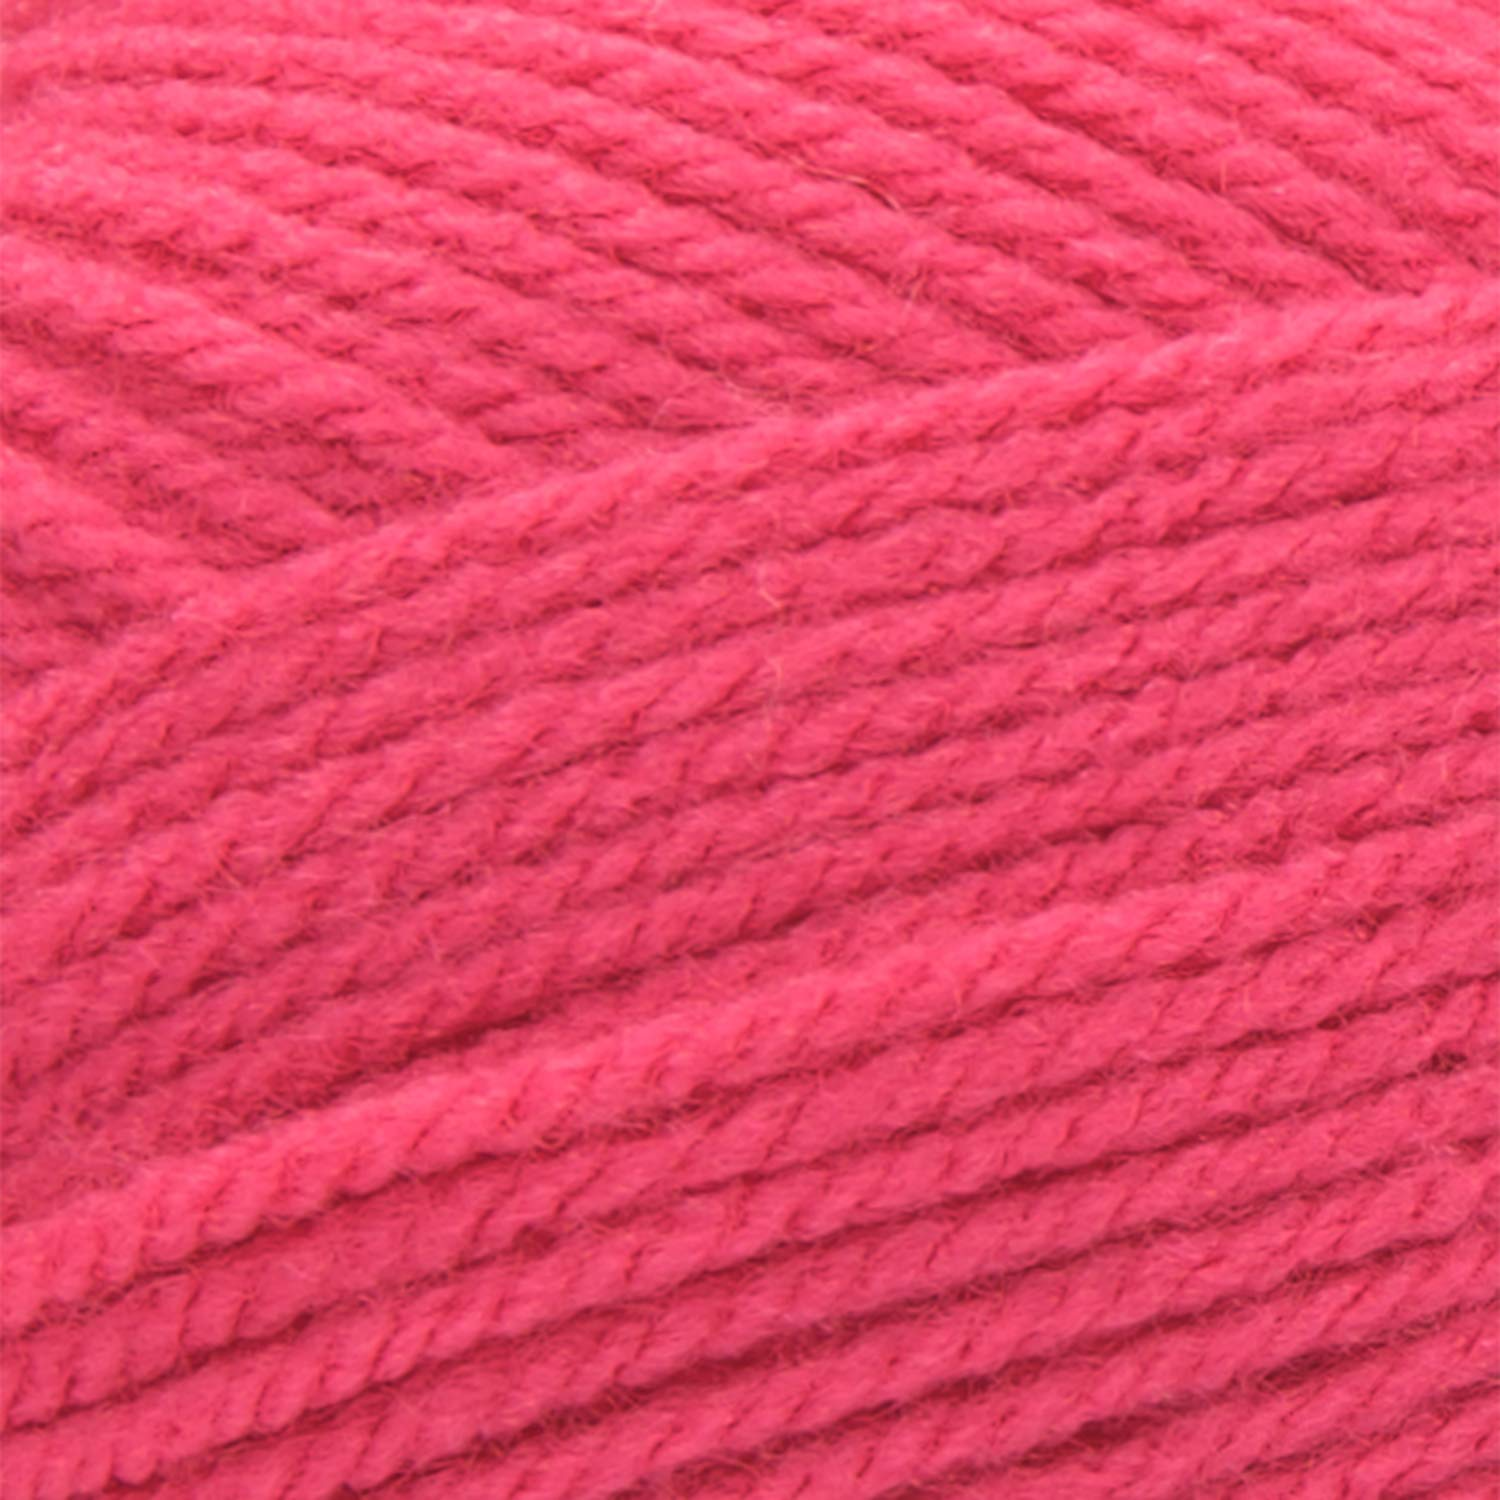 Coastal Lion Brand Yarn 201-109 Basic Stitch Premium Yarn